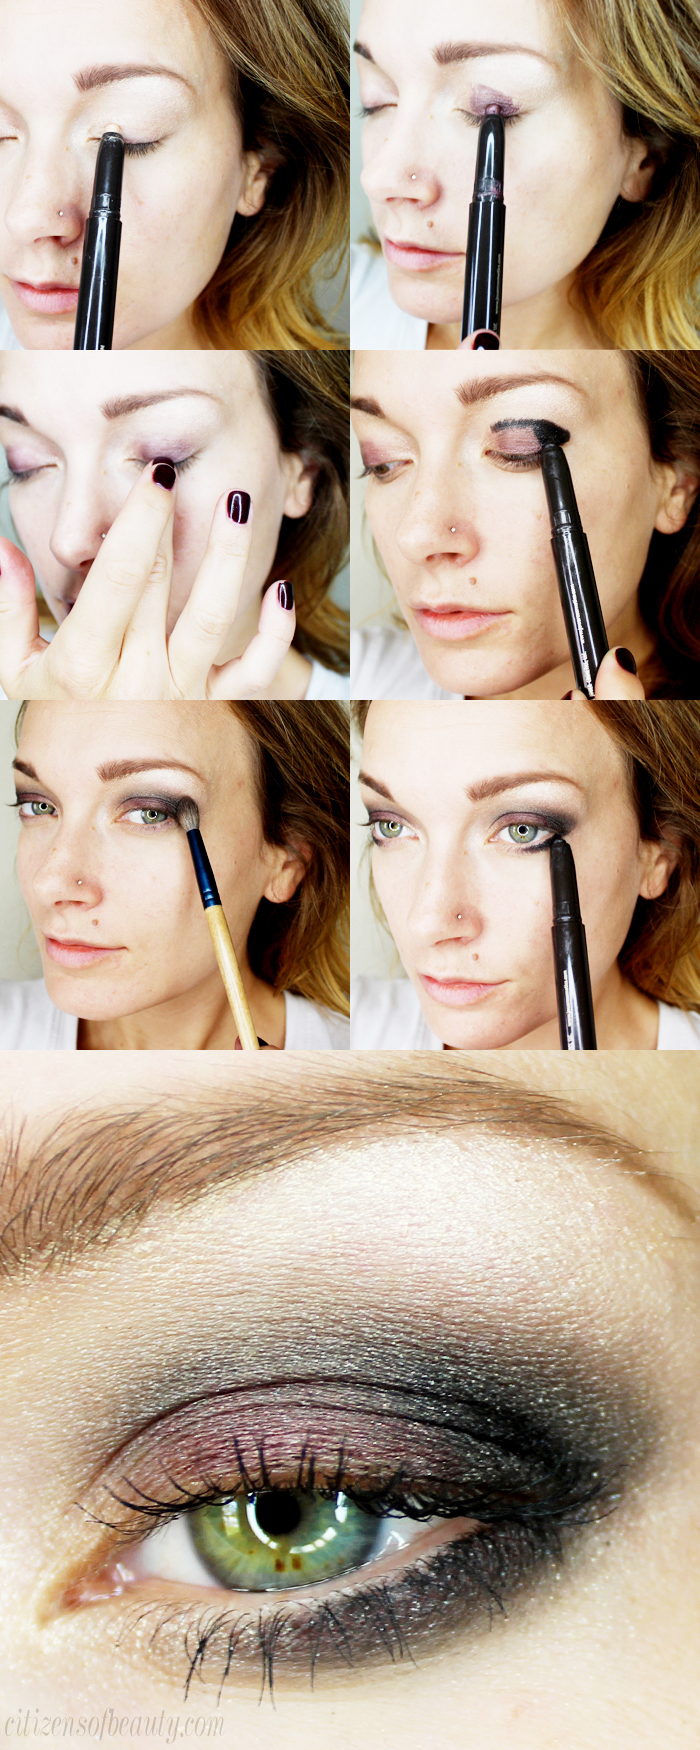 easy 5 minute smokey eye design using the eye shadow crayons from jouer cosmetics